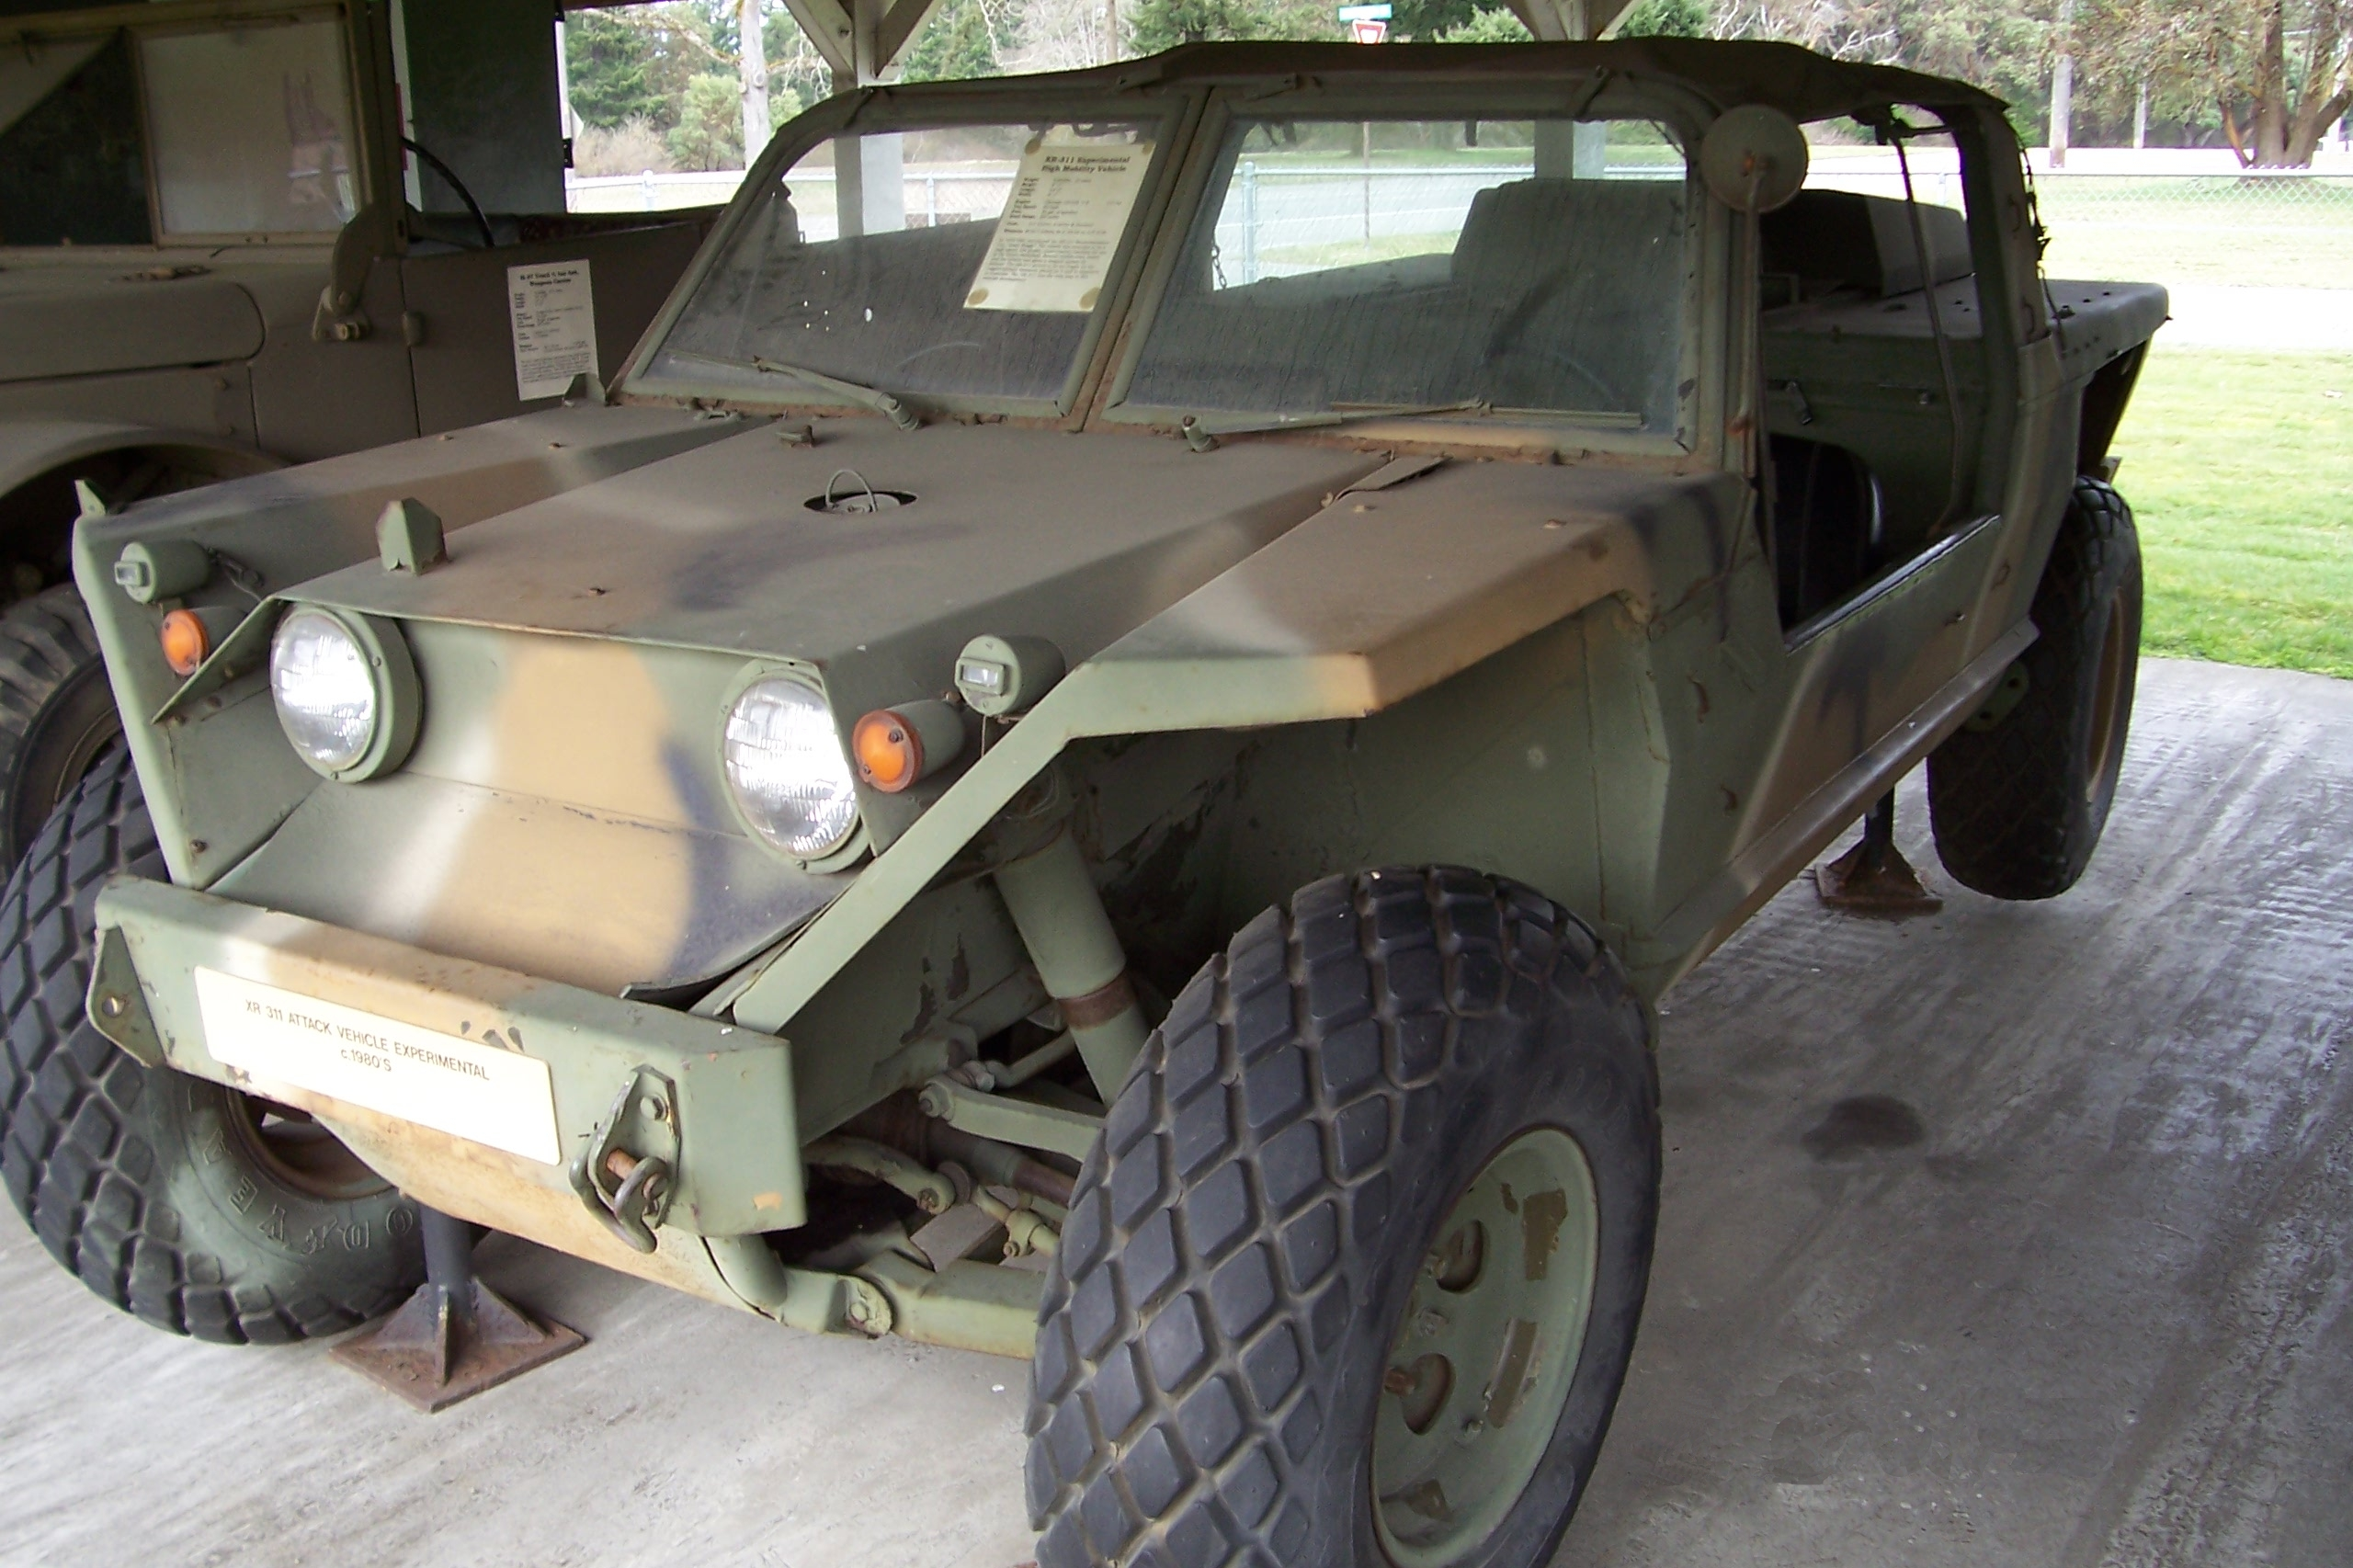 Fmc Xr311 Wikipedia Tow Harness Self Center Experimental Hummer From The 80s